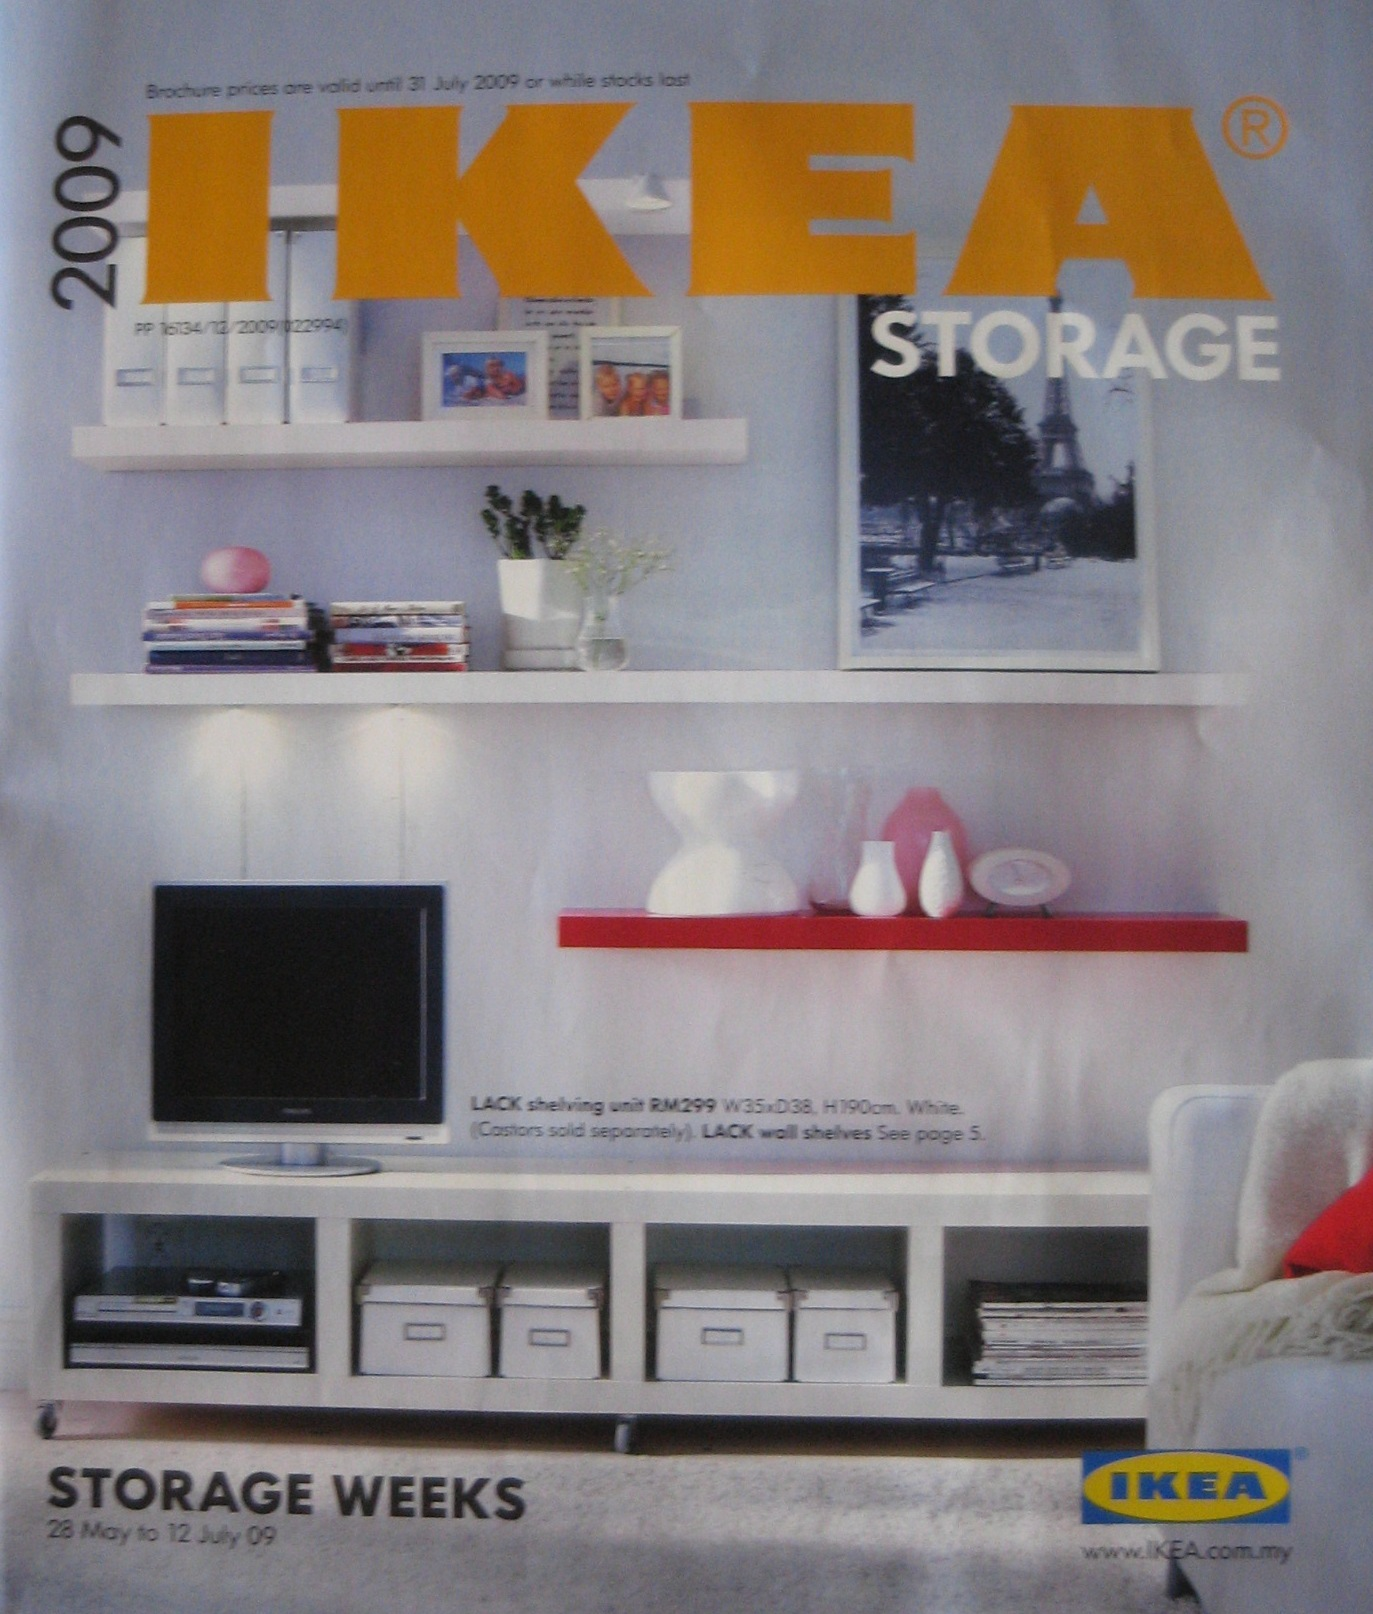 Ikea Catalogue 2009 creatively reposition existing products to increase  sales